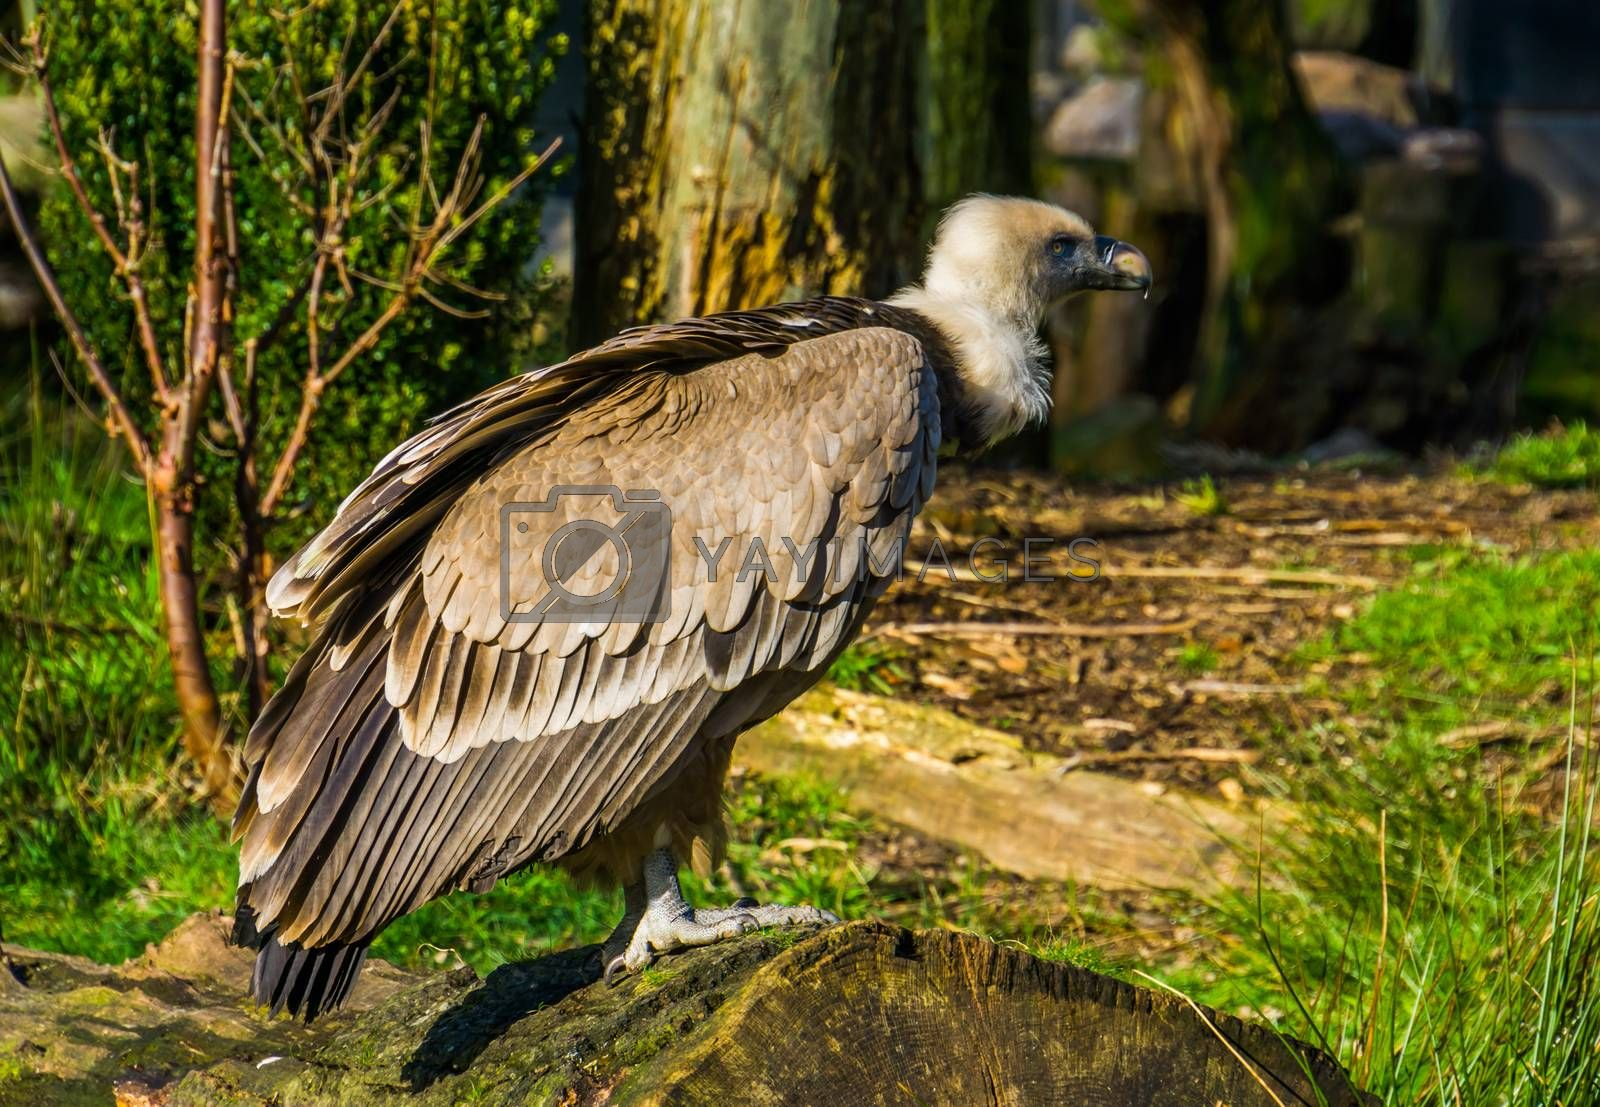 closeup of a griffon vulture standing on a tree trunk, common scavenger bird from europe